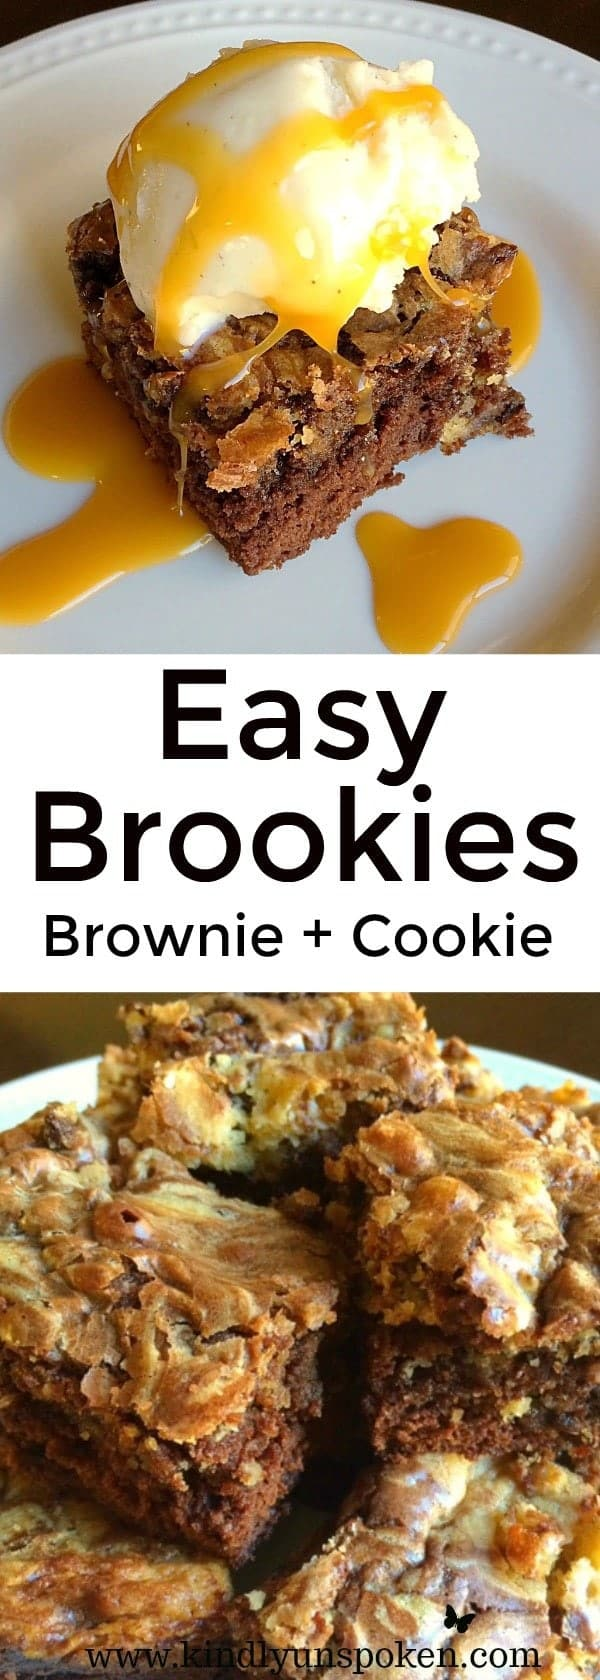 Easy Chocolate Chip Brookies (Brownies + Cookies) - The perfect, delicious, decadent treat for when you can't decide between cookies and brownies!